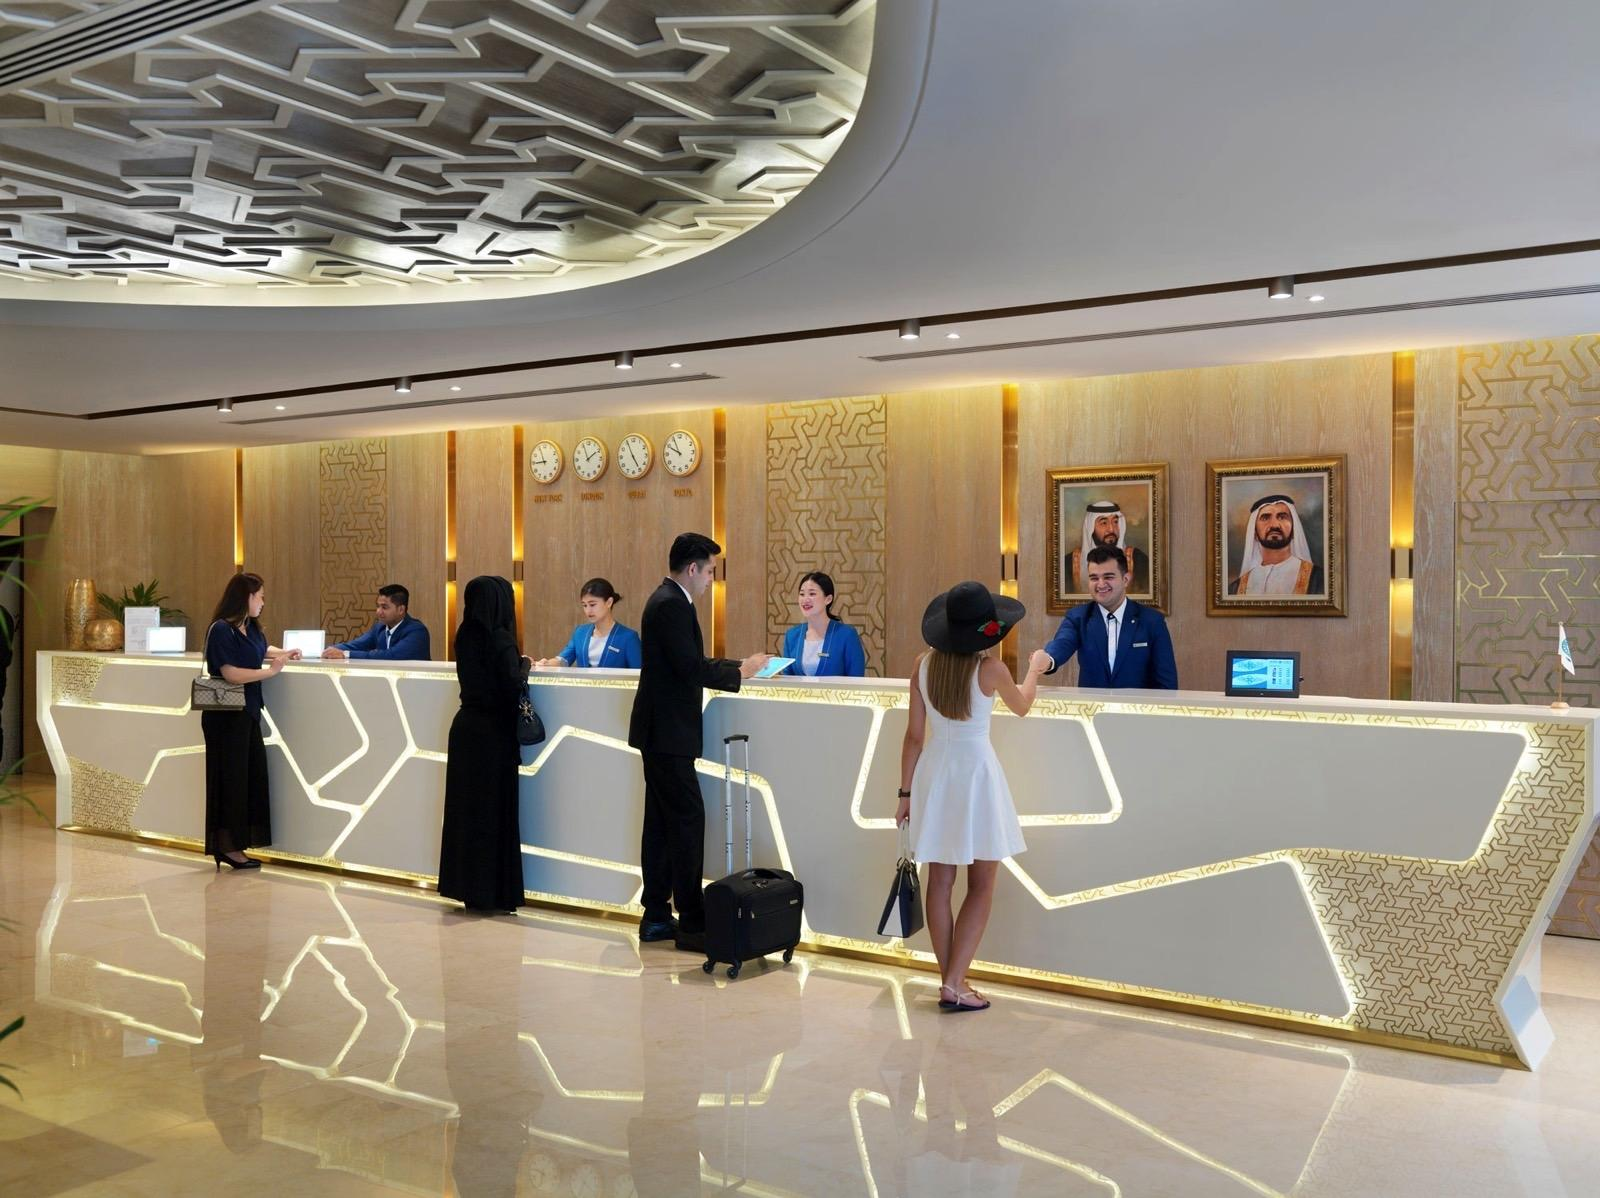 Lobby at Two Seasons Hotel & Apartments in Dubai